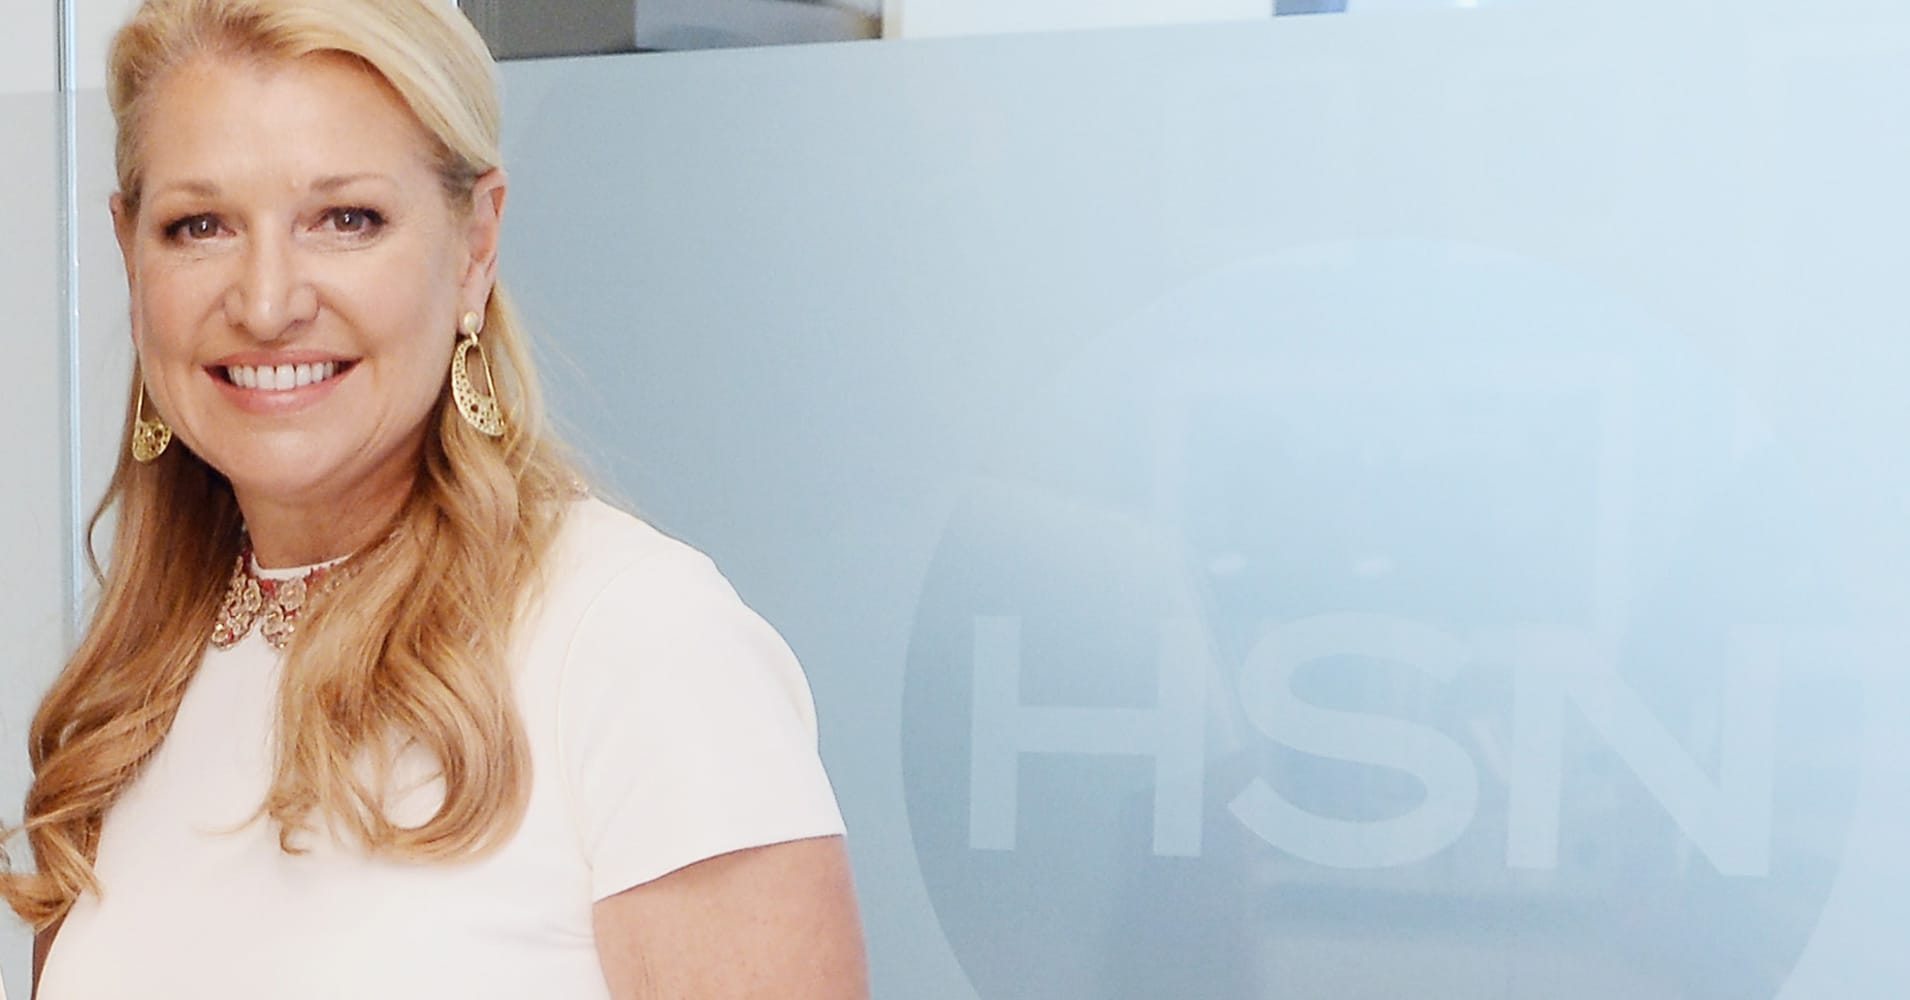 HSNi CEO Mindy Grossman